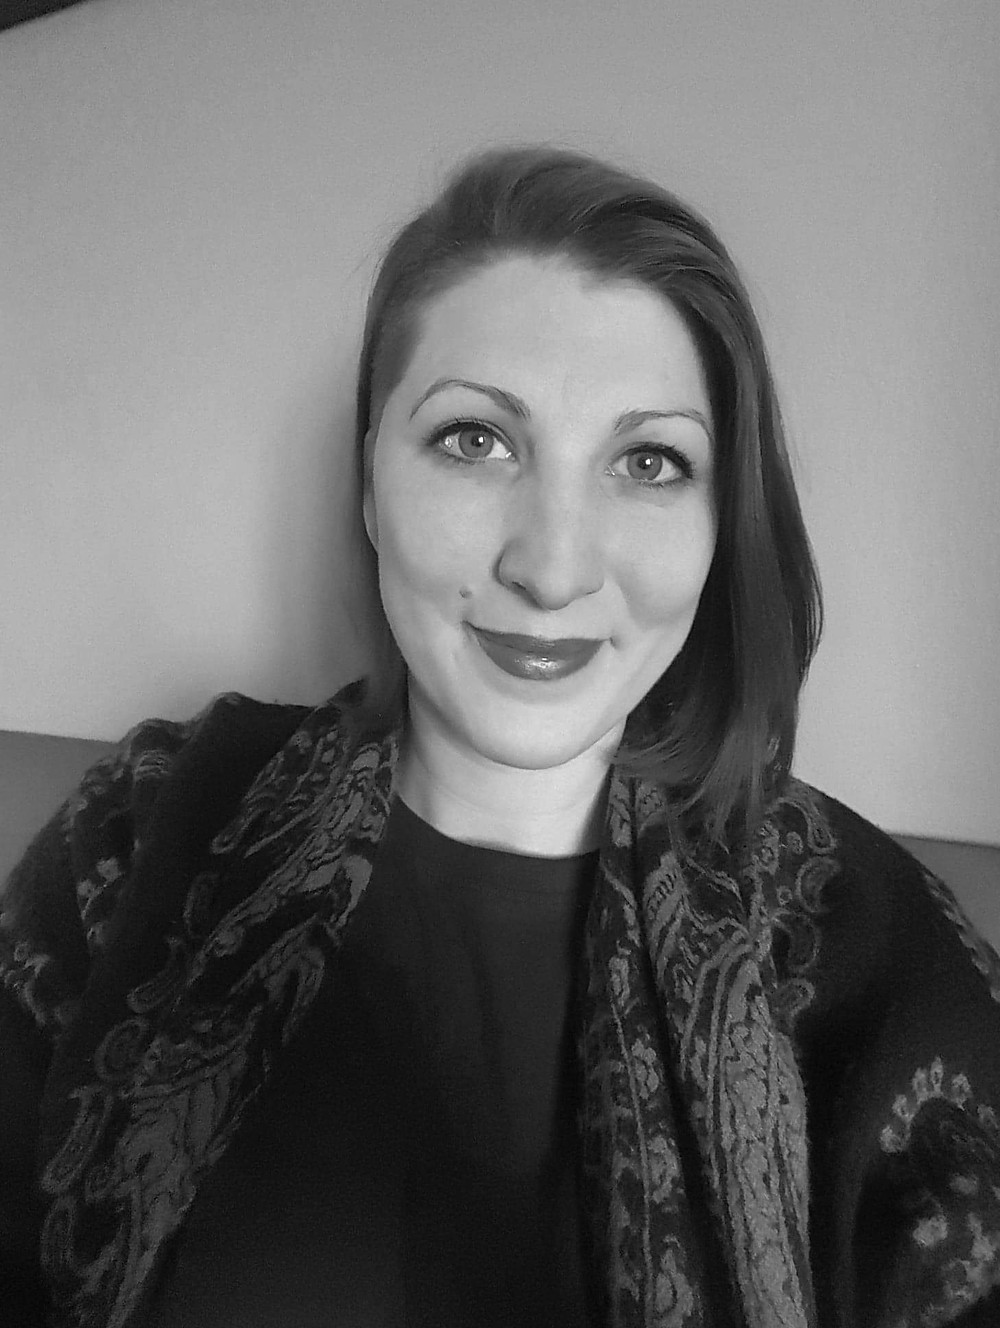 A black and white headshot of Sophie, a white non binary person in her early 30s. She's wearing bright lipstick, a soft patterned scarf around her shoulders and a dark jumper. She has a shoulder length bob with a side shave. She's smiling a tthe camera.